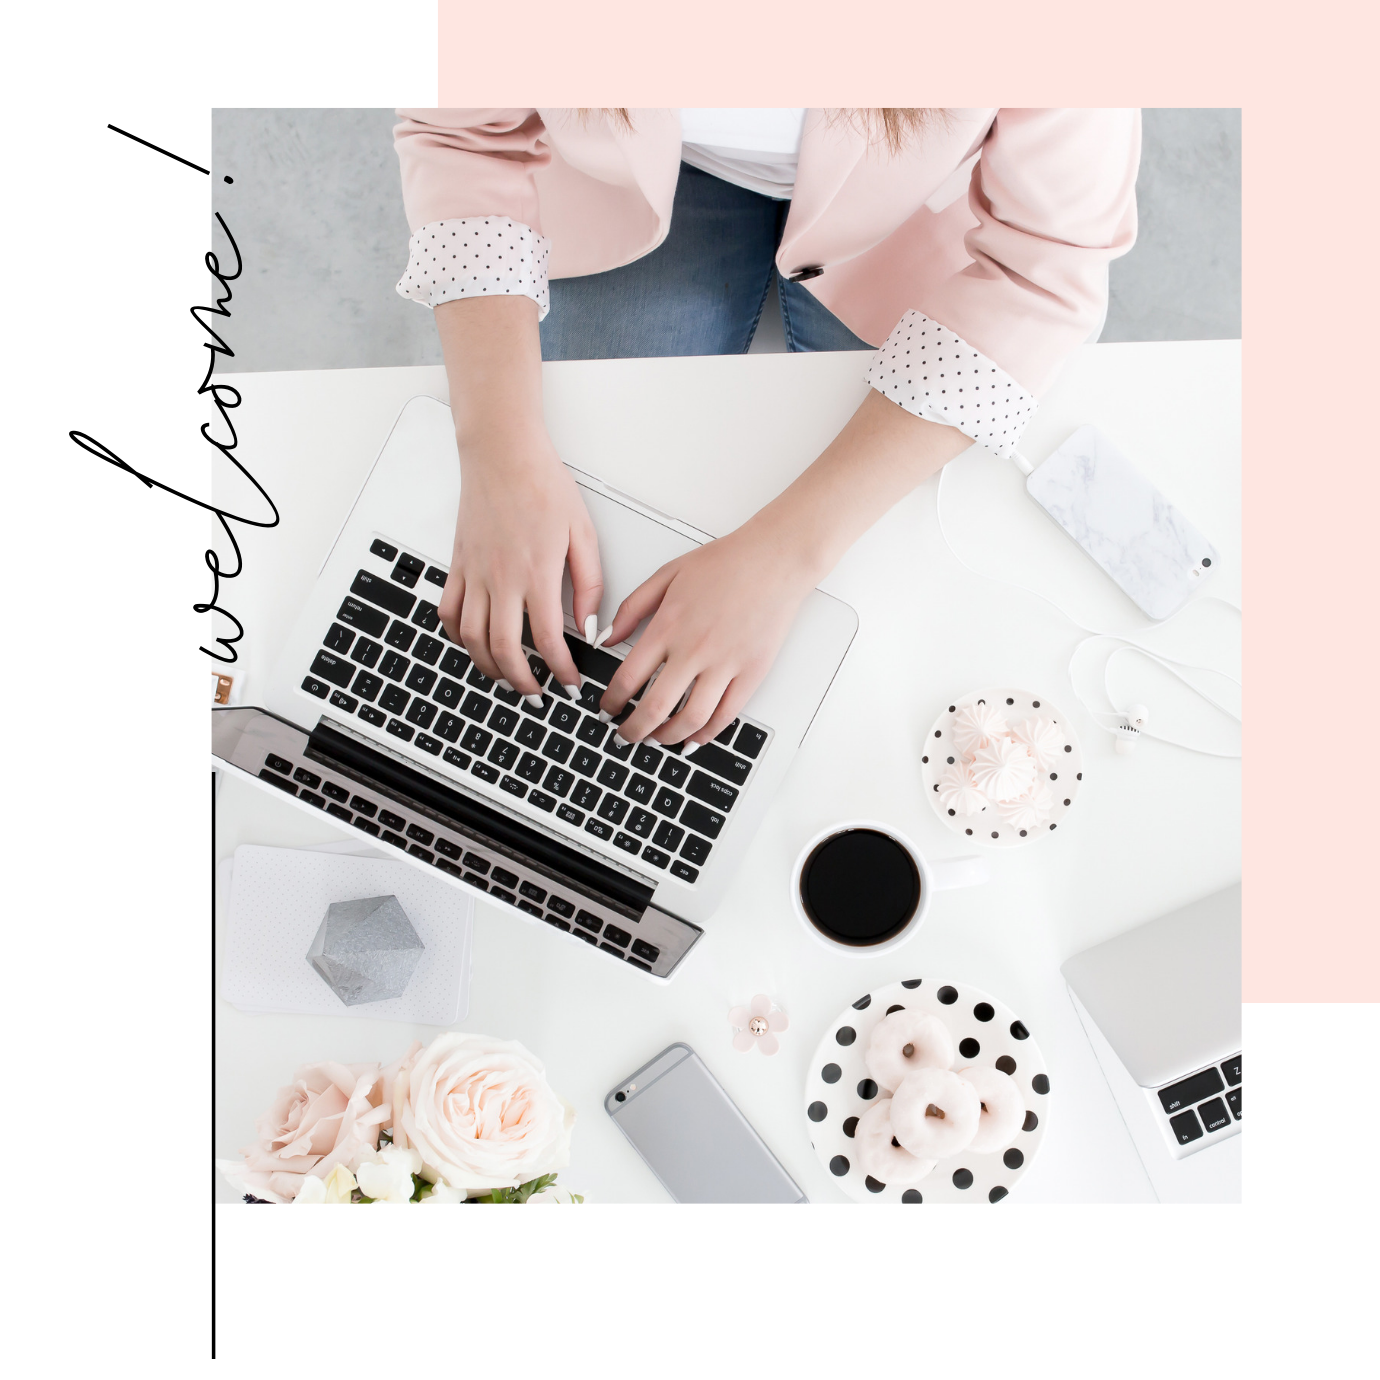 Ready to start your online brand? - Learn how to create a stunning website that will captivate your audience, wow your clients and convert to paying customers. Everything you need is right here!